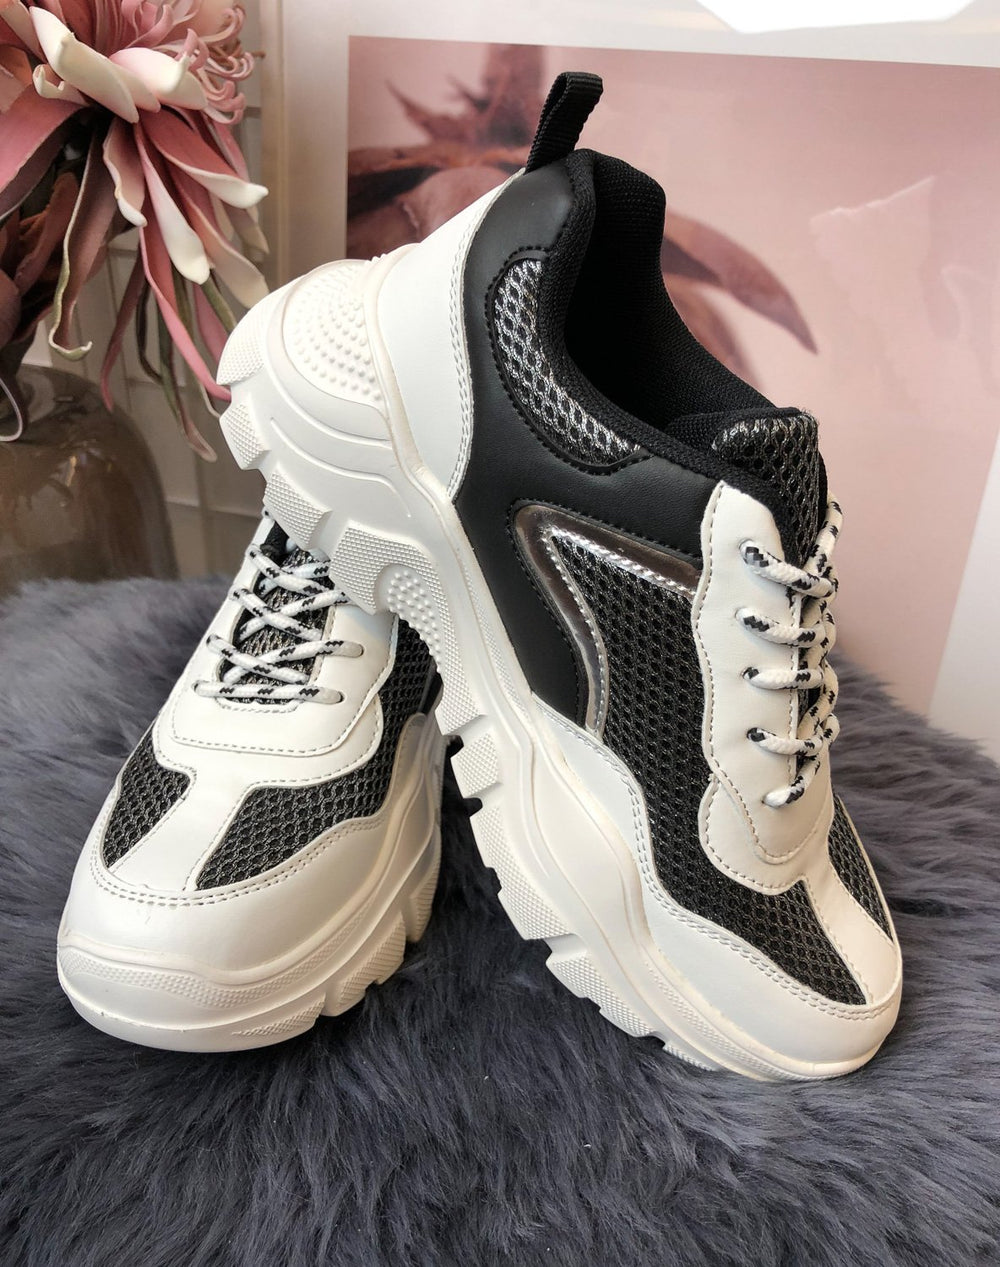 Duffy 9709133 sneakers white/black - Online-Mode